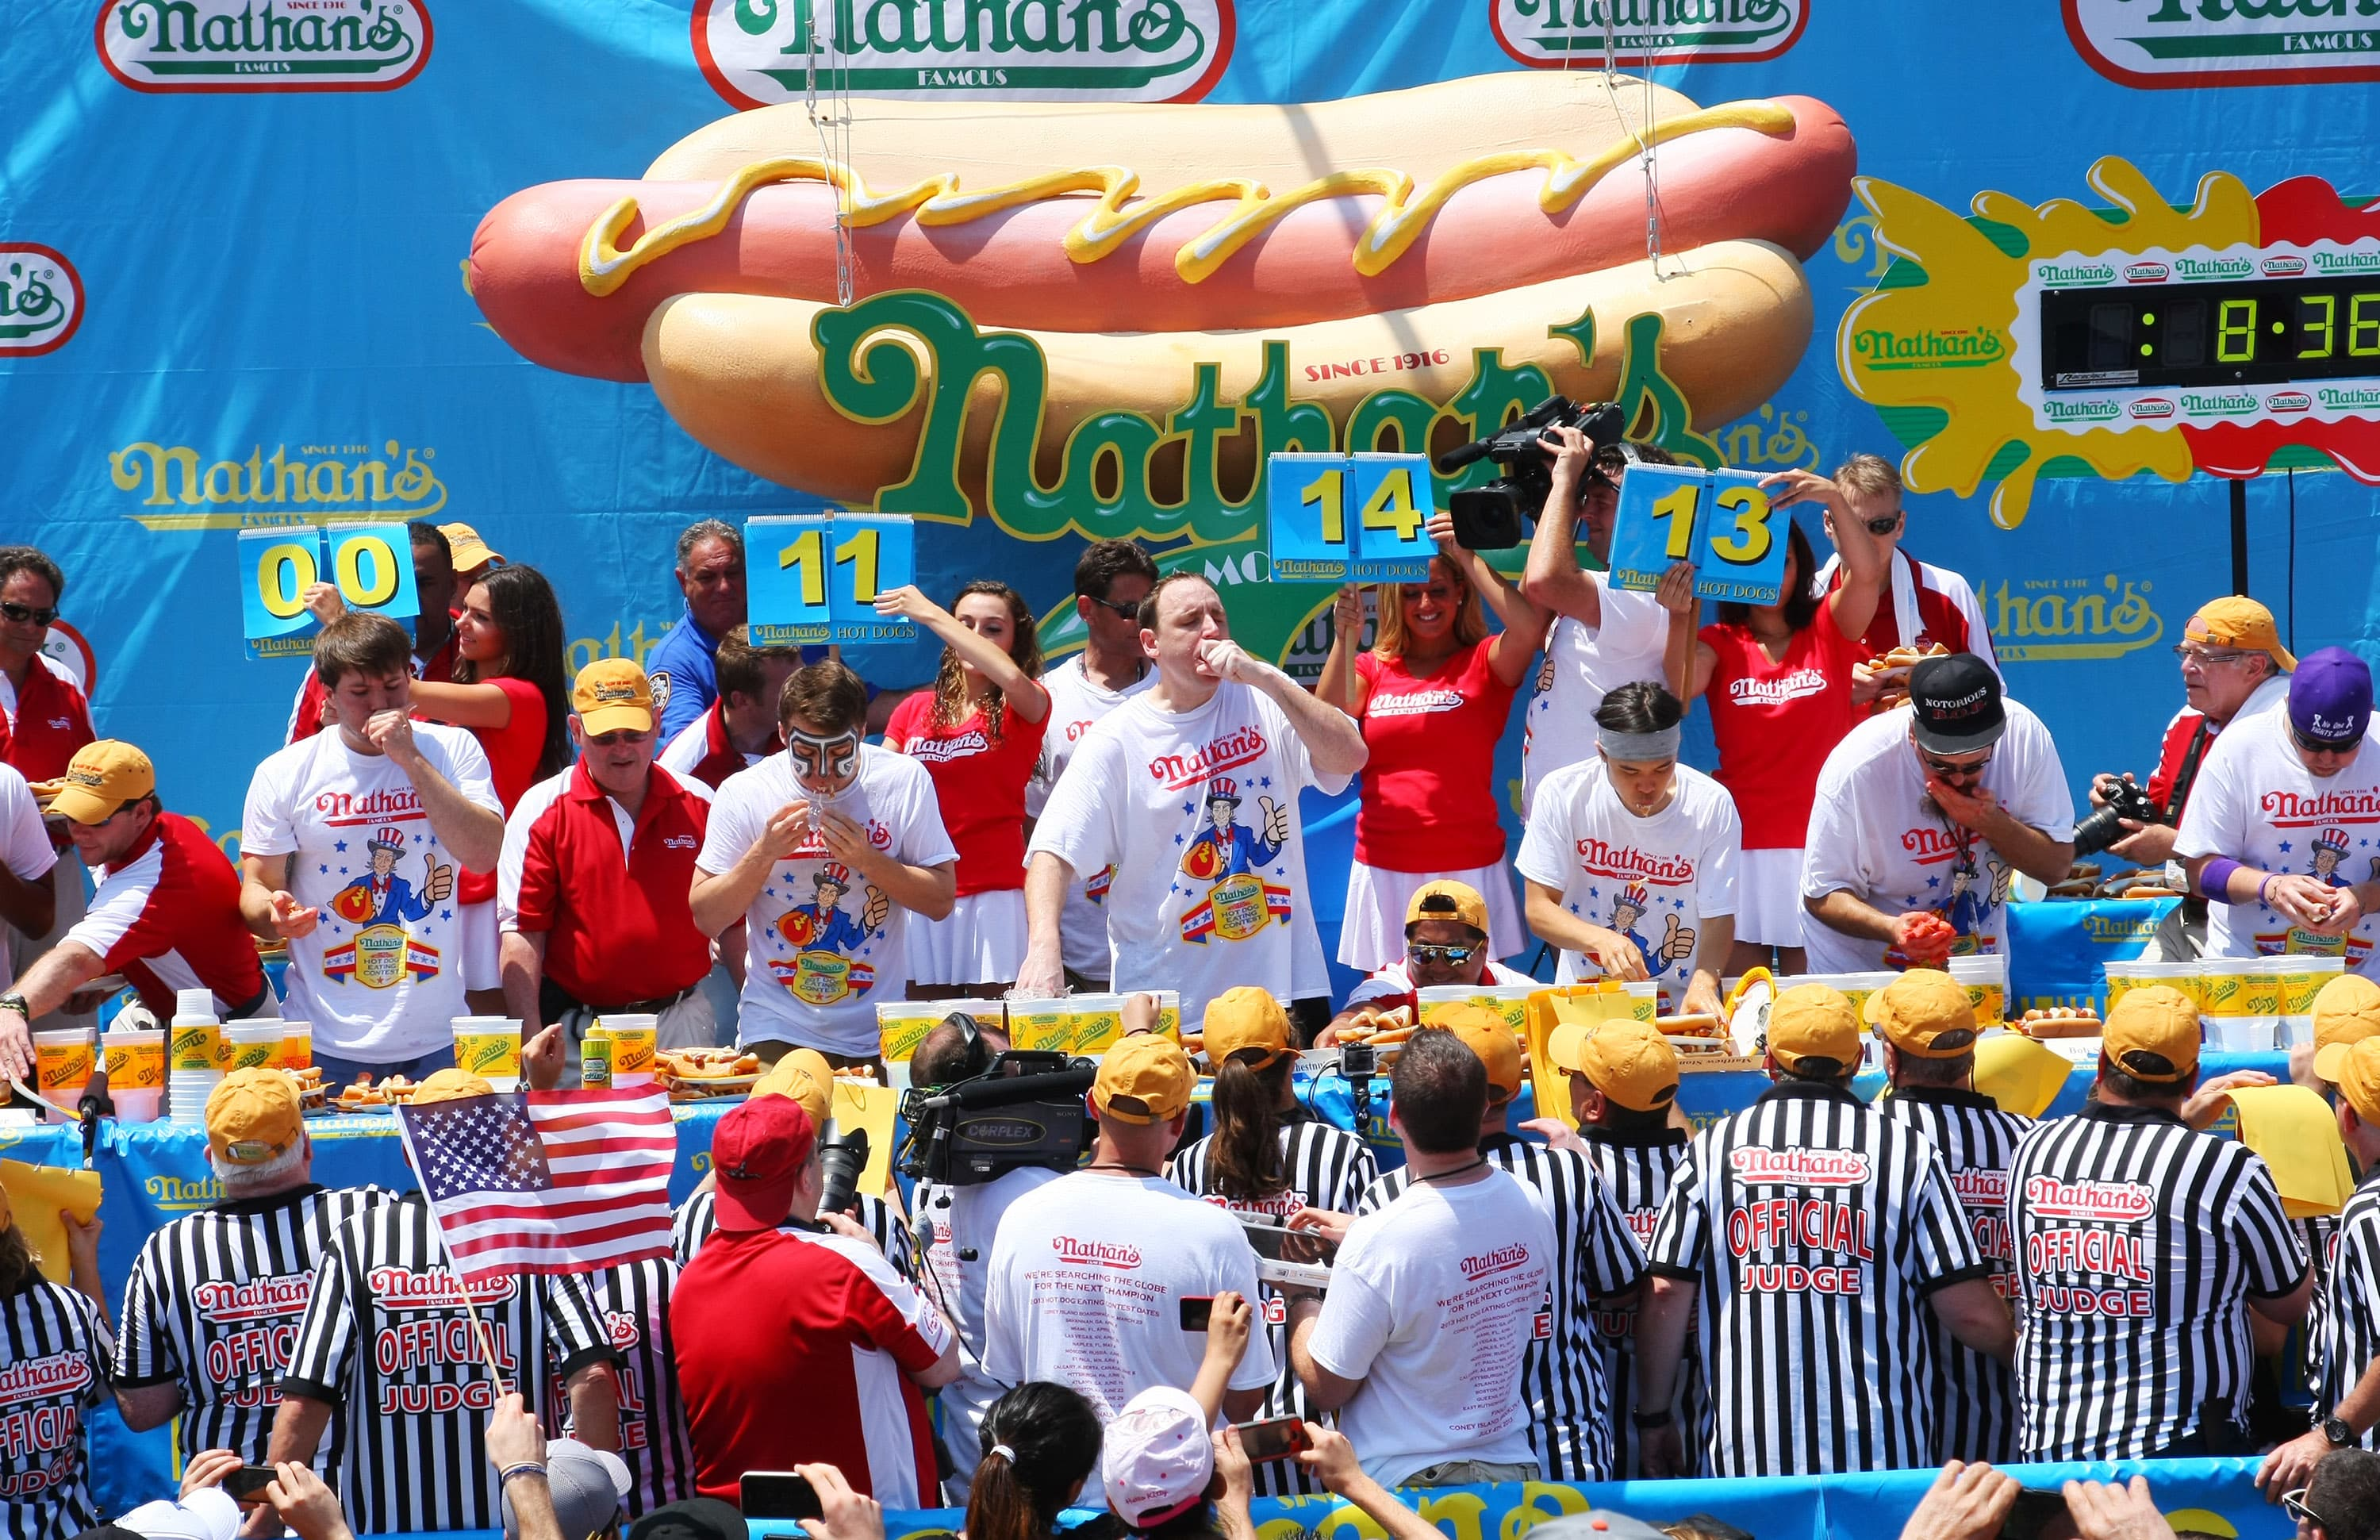 Nathan's hot dog eating contest offers the frank a rare chance to shine